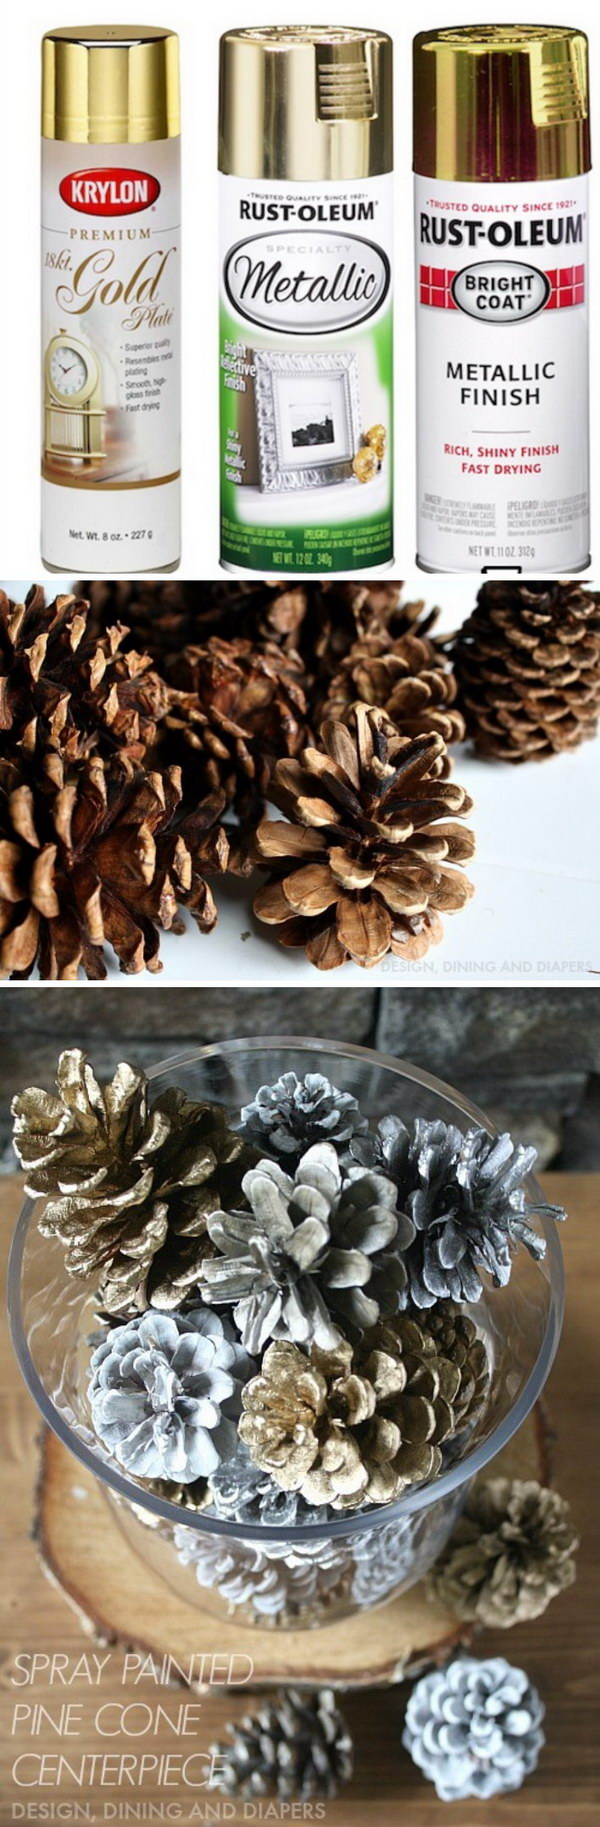 Spray Painted Pinecone Centerpiece.